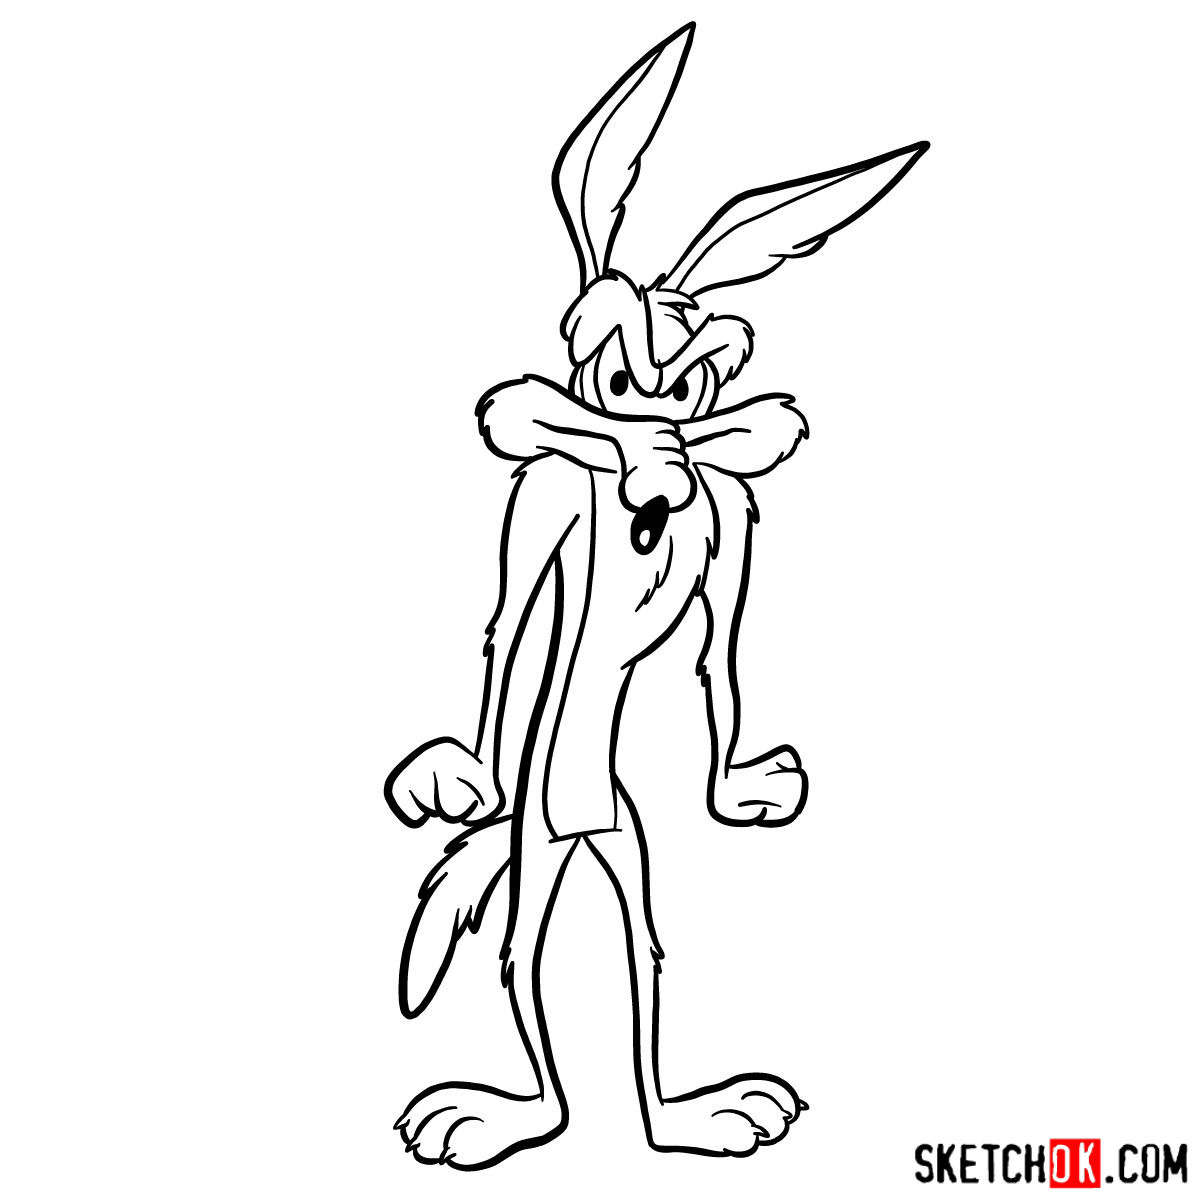 How to draw Wile E. Coyote - step 11